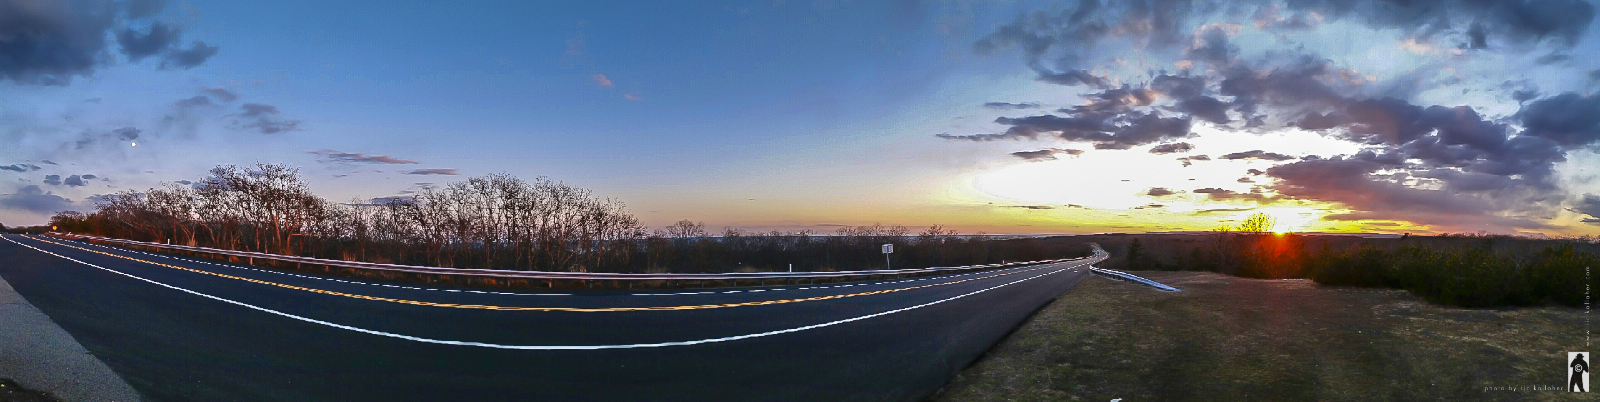 Full Moonrise on the Left / Big Sunset on the Right / Montauk Highway in Between